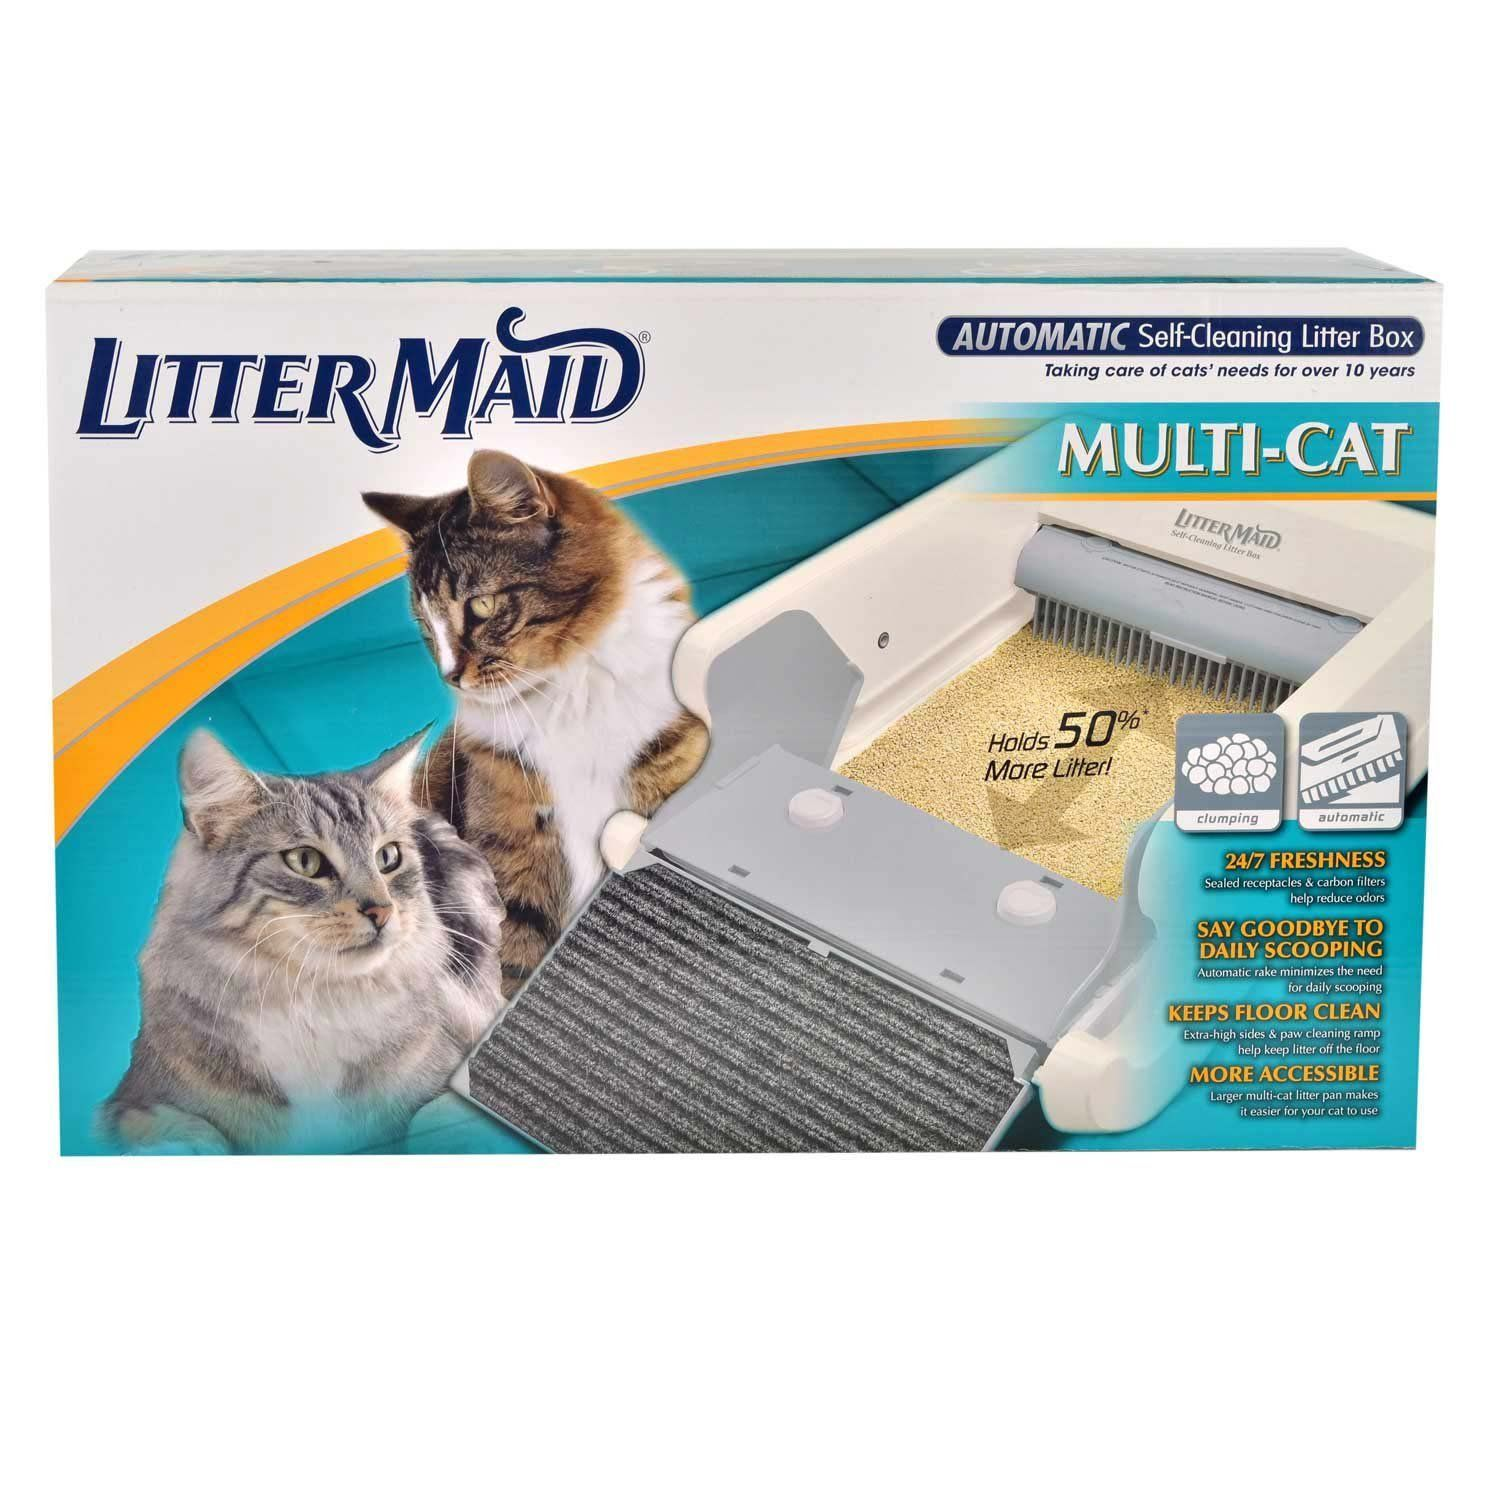 Littermaid Lm 86579 Multi Cat Automatic Self Cleaning Litter Box Discover This Special Cat Product Click The Image Cat Litter Cat Litter Cleaning Li